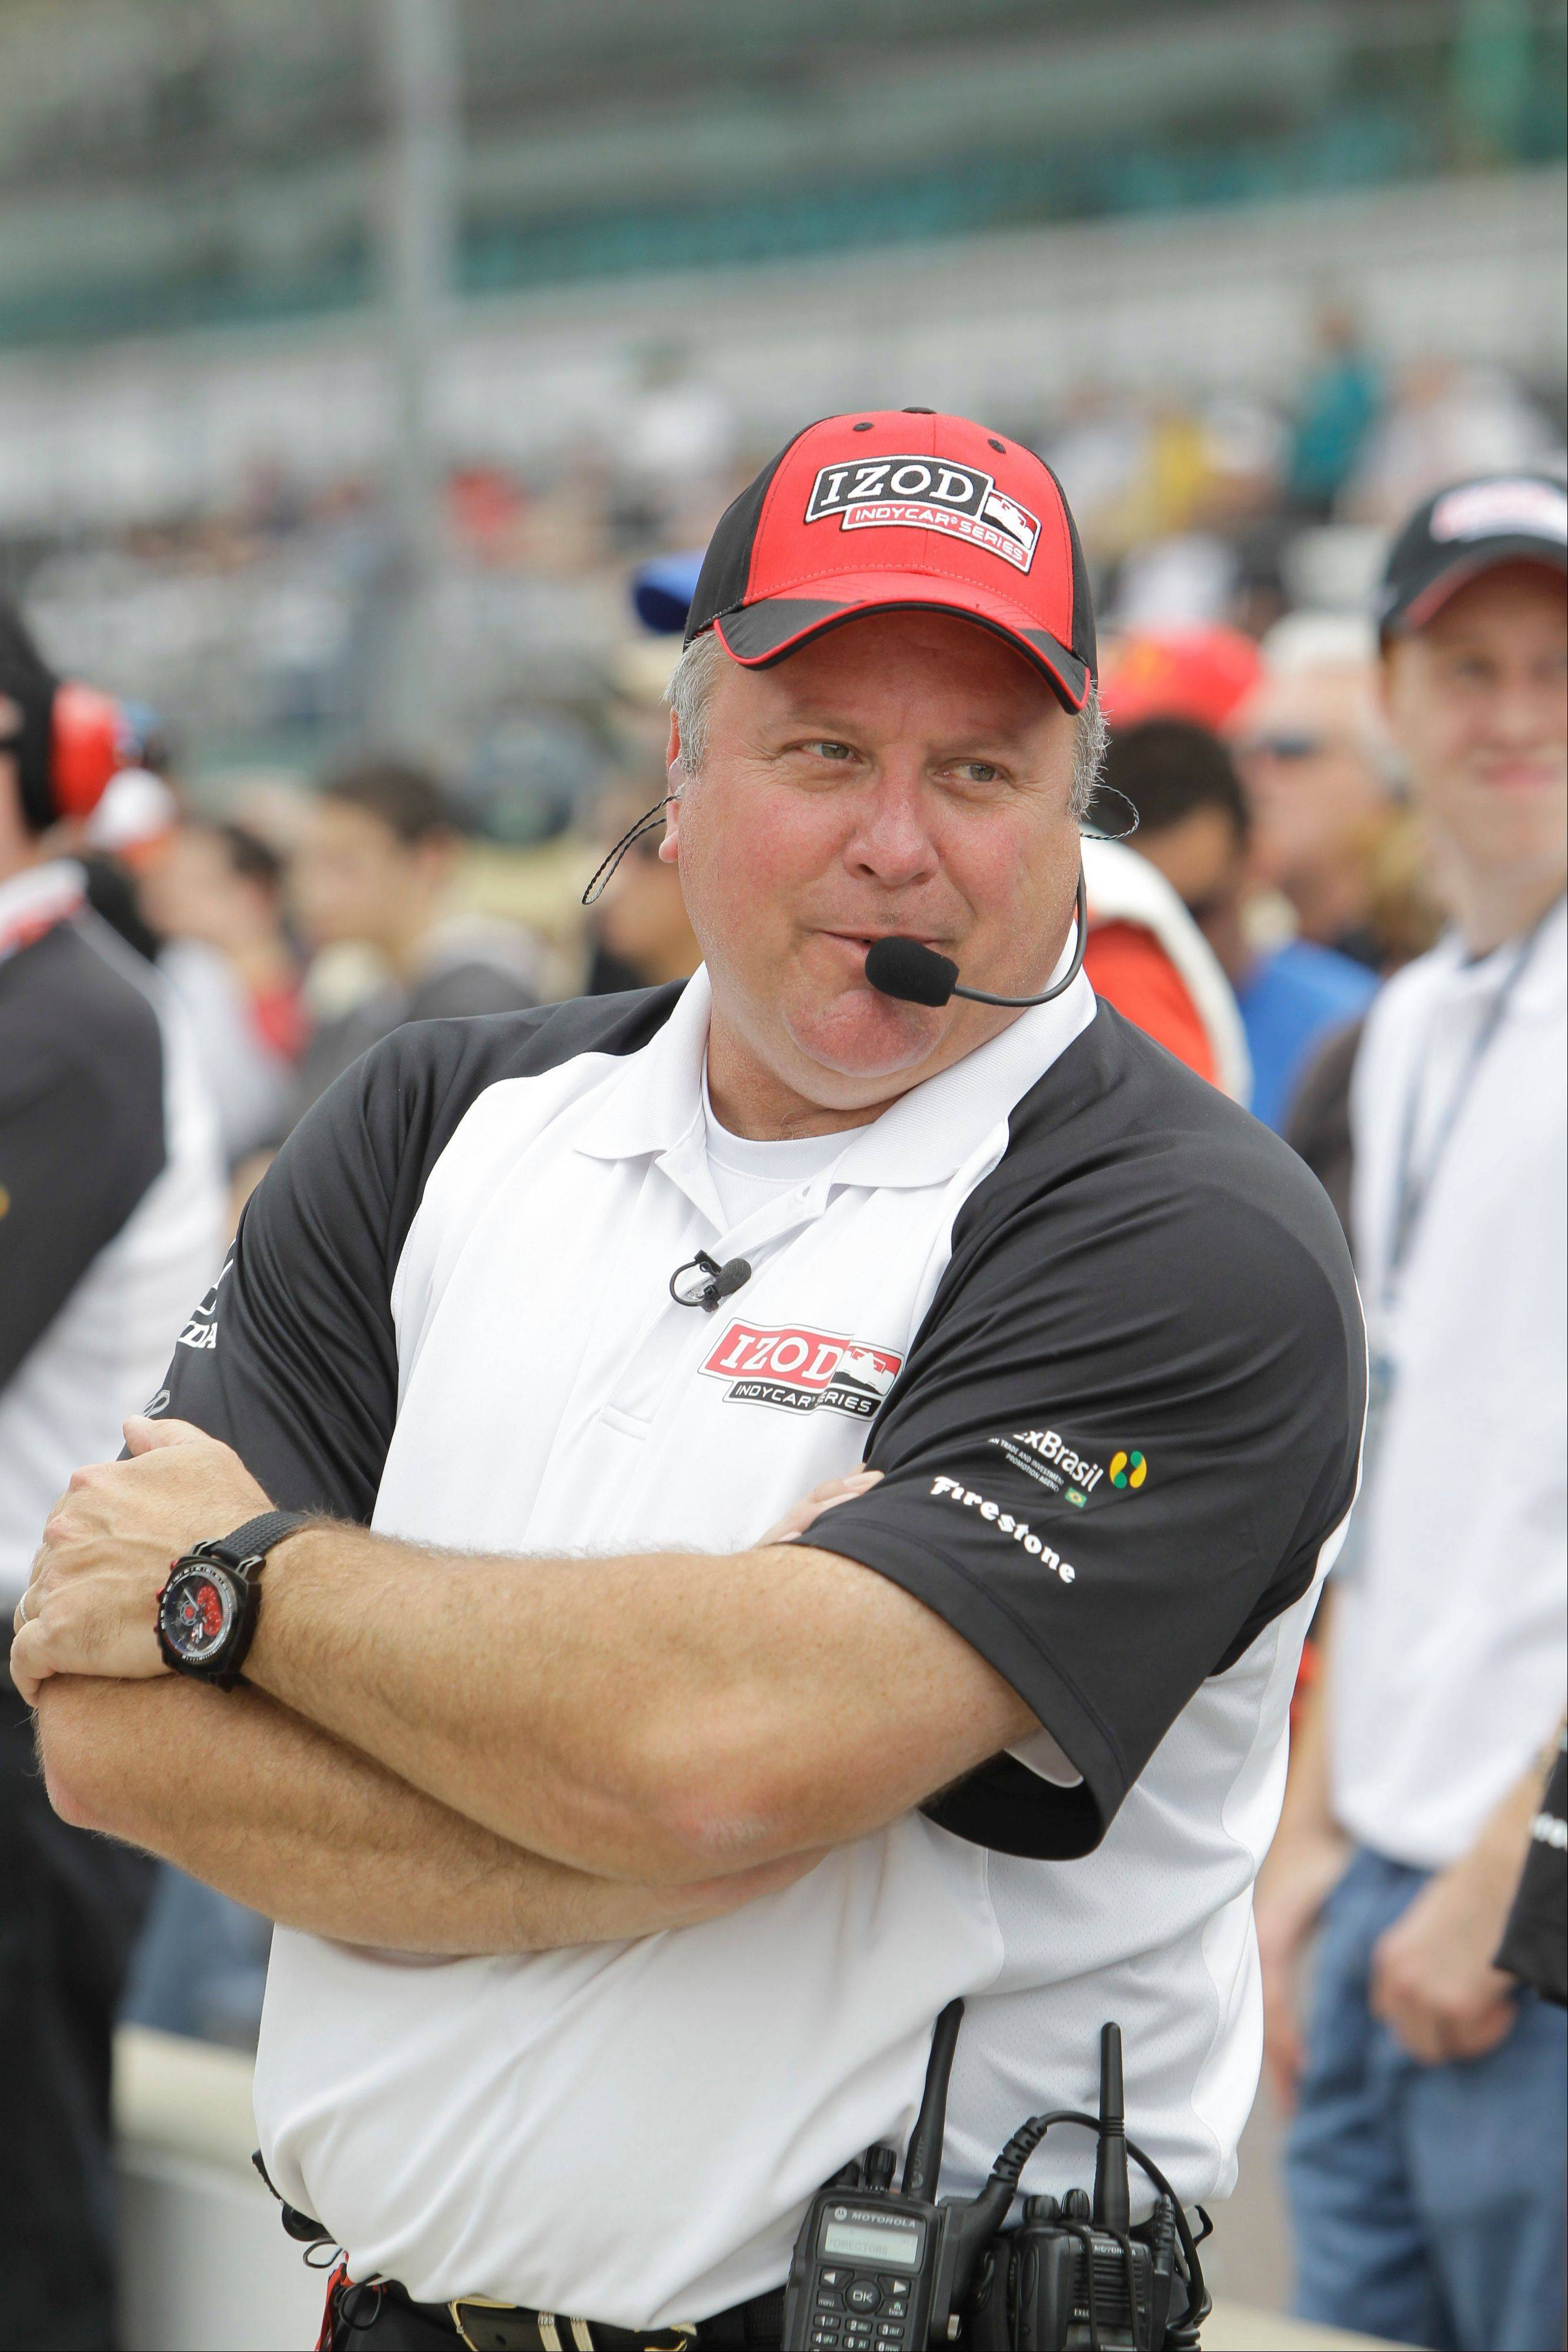 Brian Barnhart, IndyCar�s director of competition and operations, has admitted he made a mistake in Sunday�s race at New Hampshire Motor Speedway.